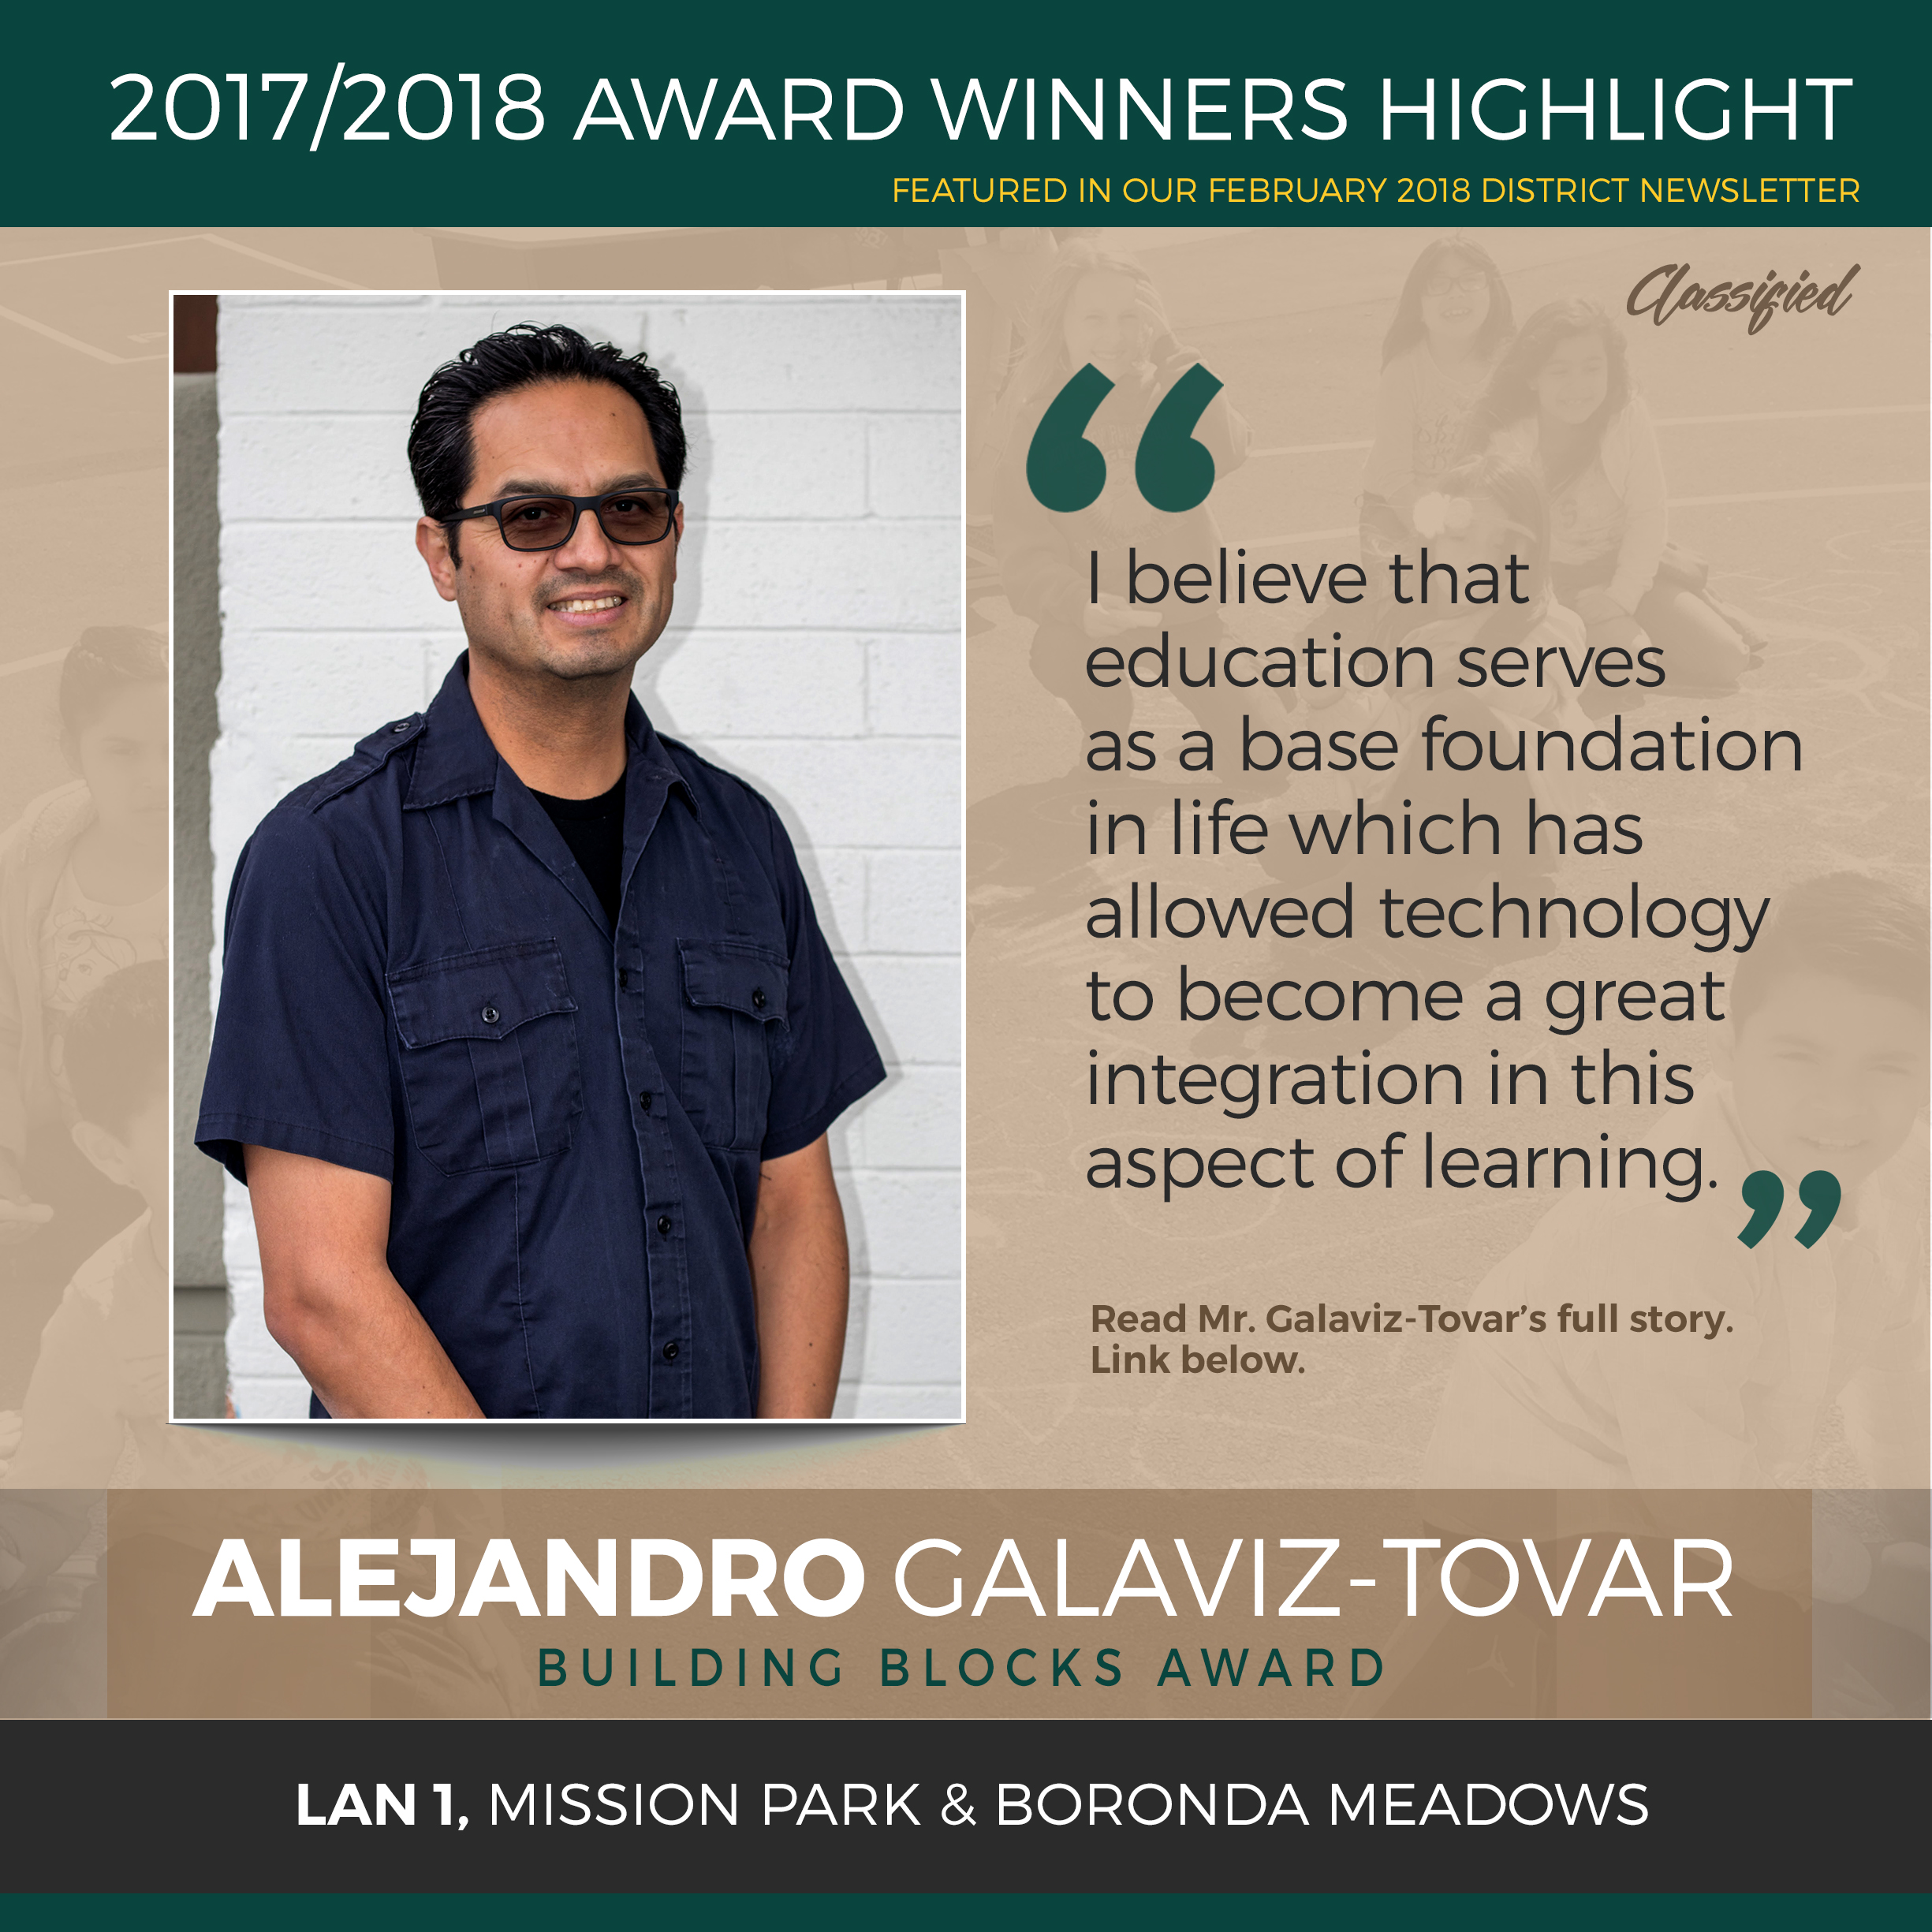 Alejandro-Award Winner Hightlight_Social Ad Template.jpg